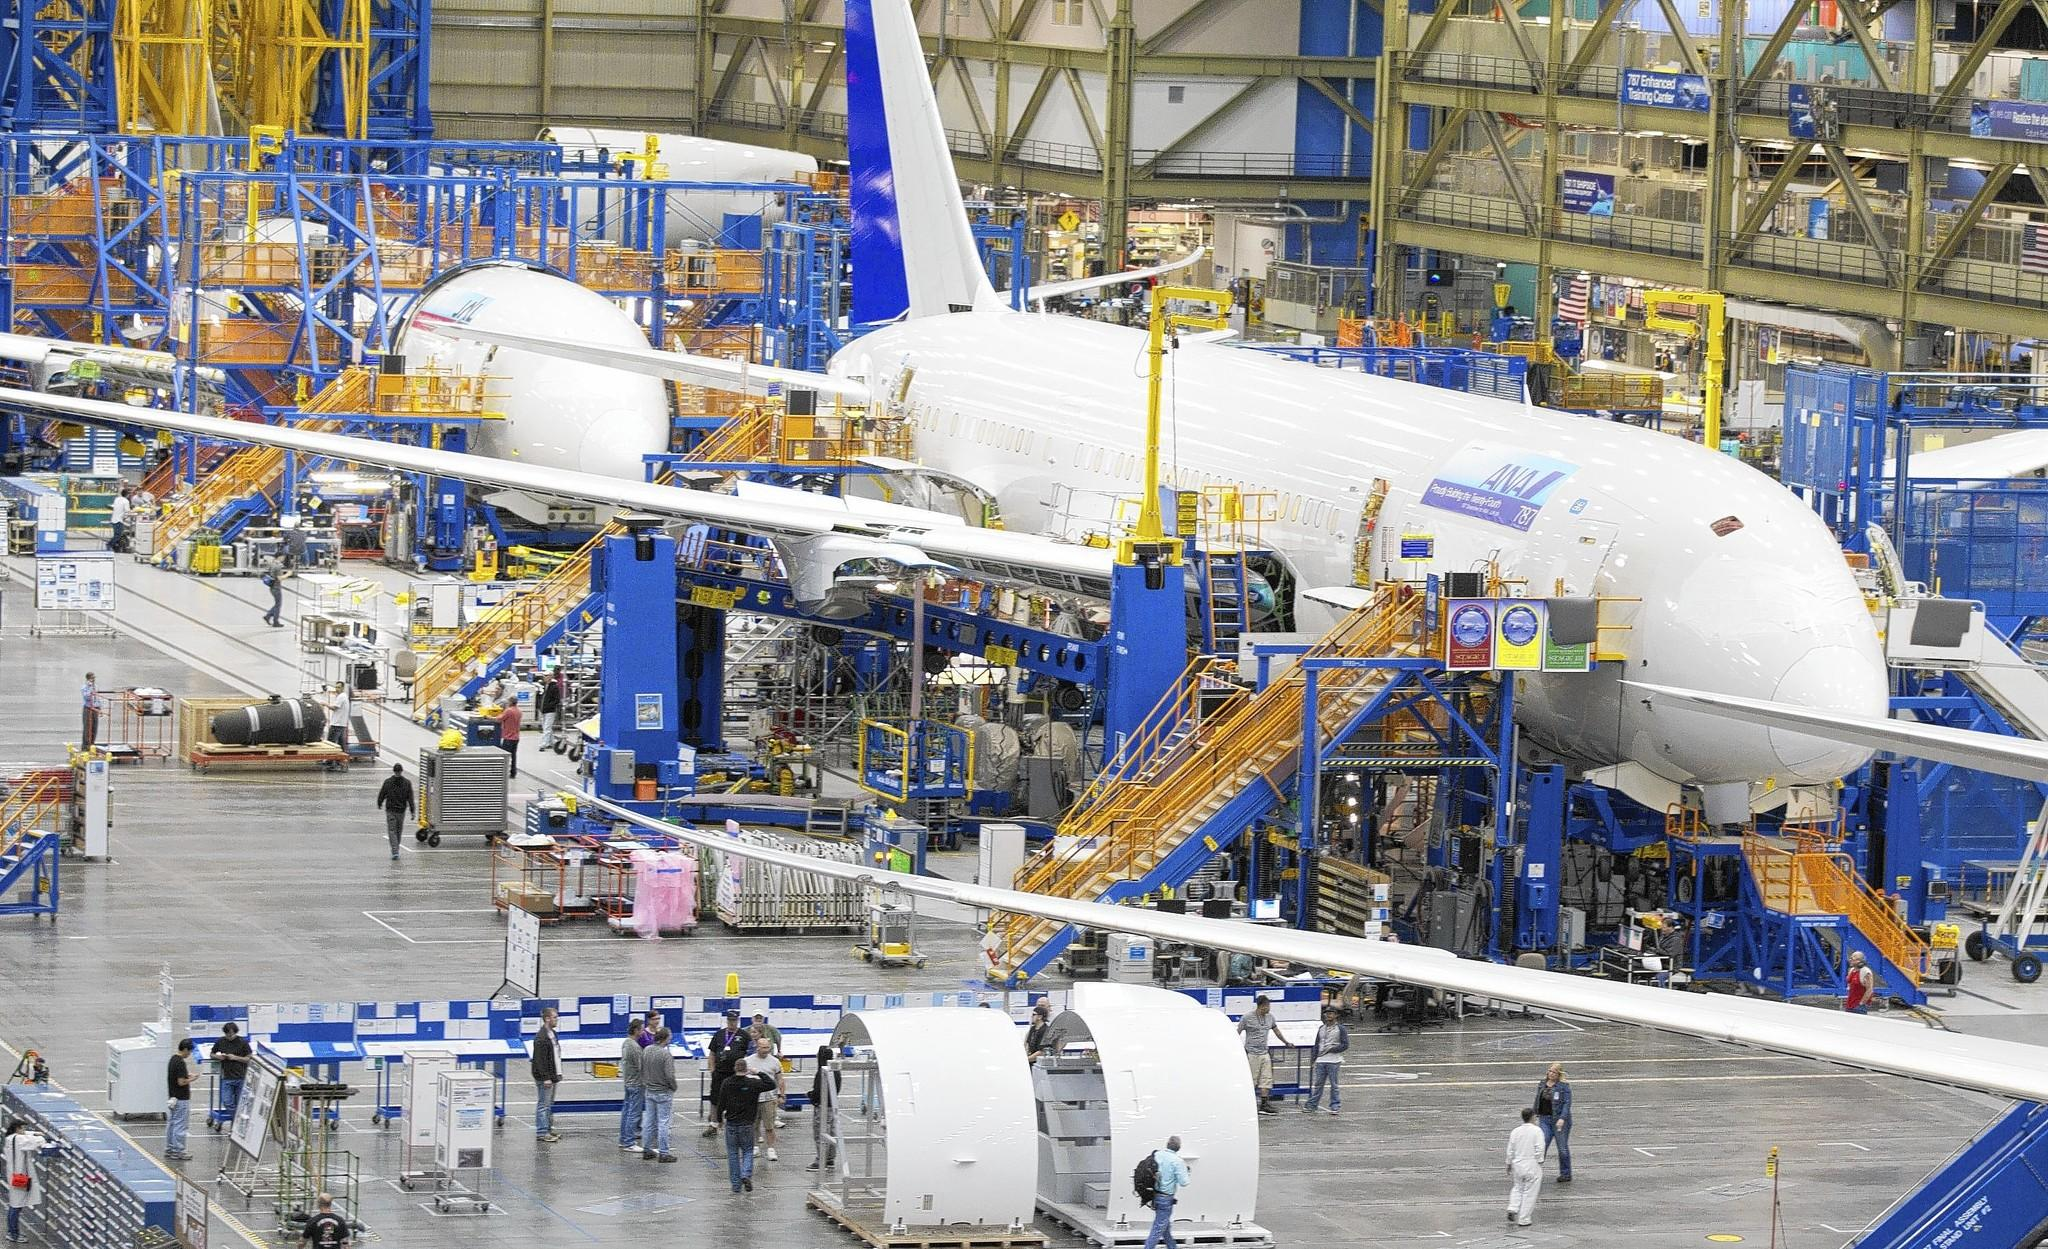 Boeing expects to deliver 110 of its 787 Dreamliners this year, up from 65 last year. The company said 18 of the aircraft were delivered during the first quarter, compared with one a year earlier.